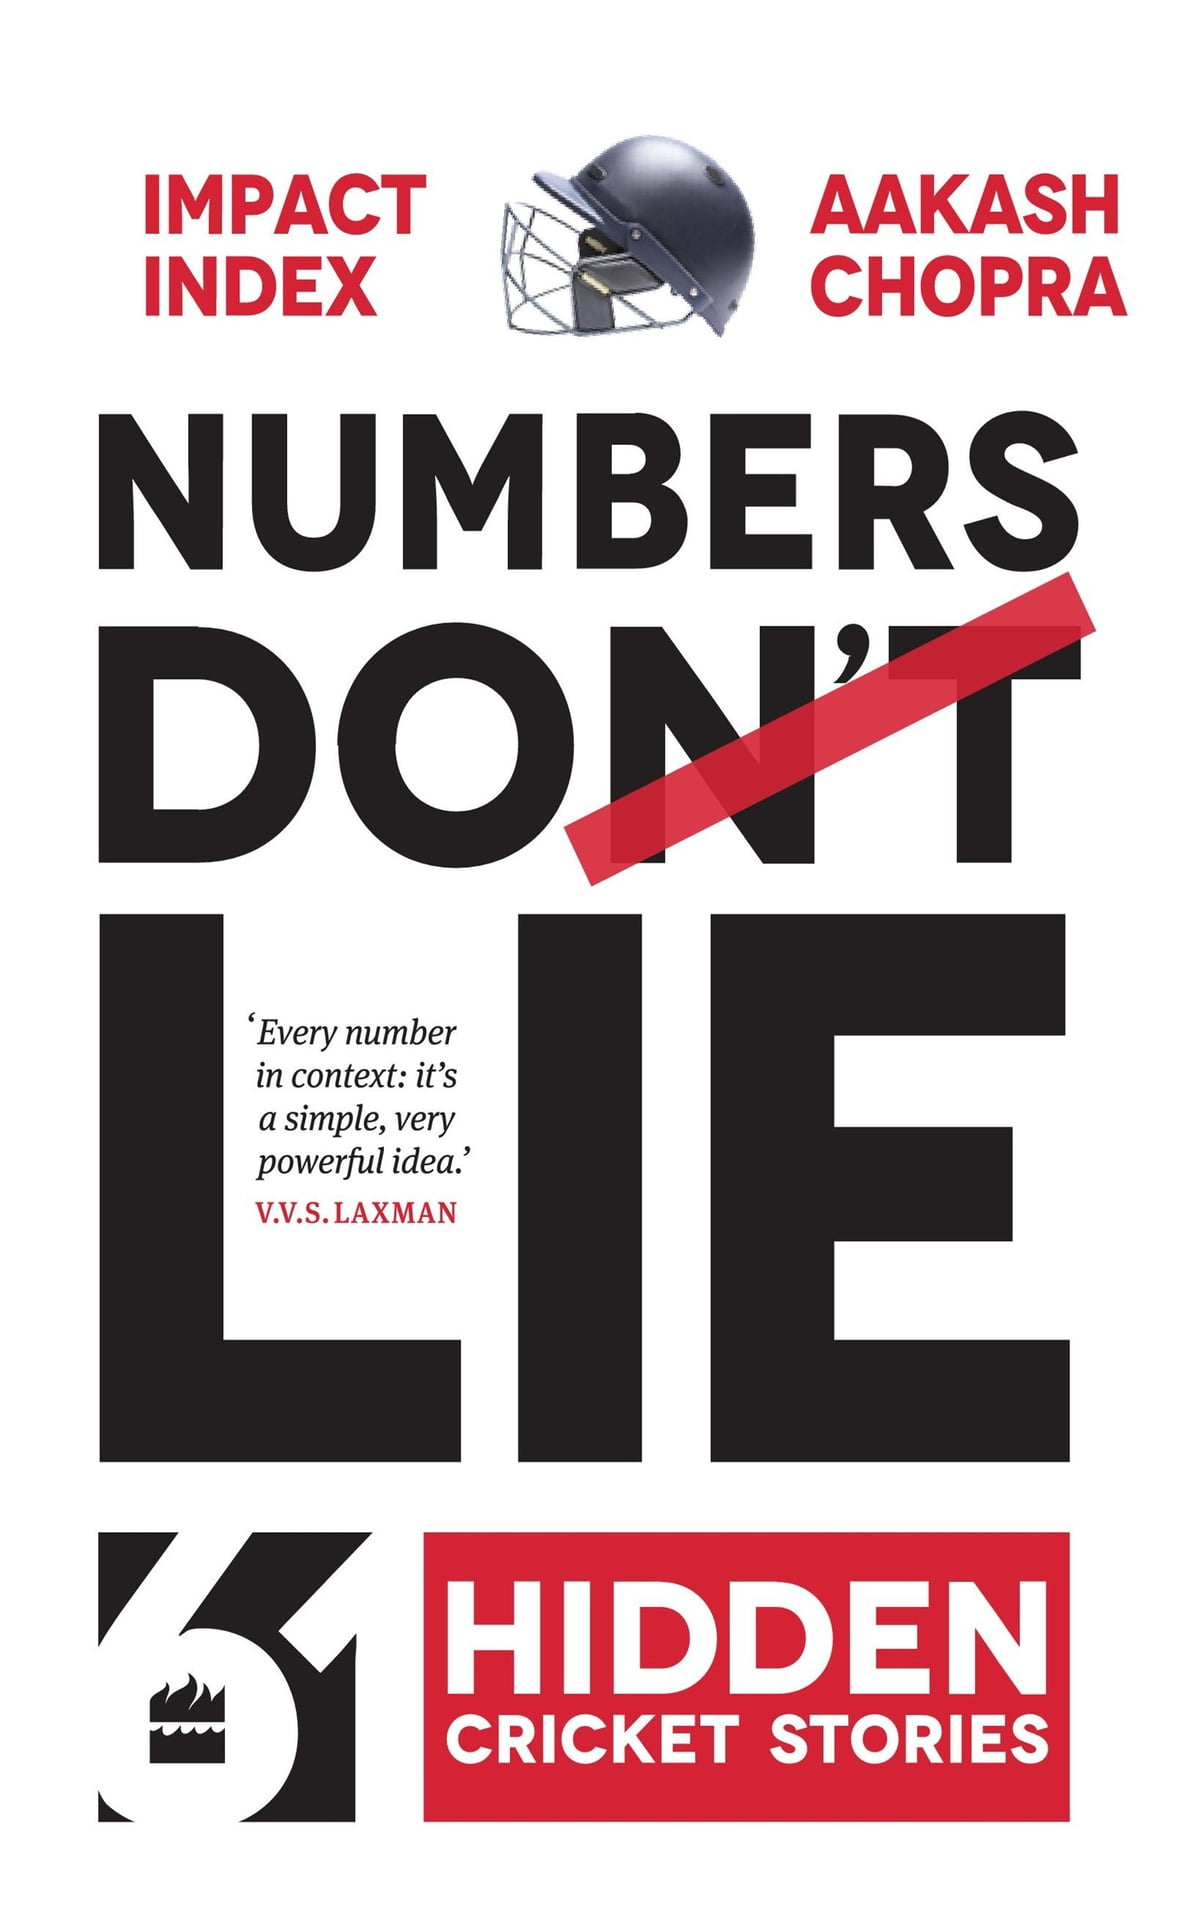 Numbers do lie 61 hidden cricket stories ebook by impact index numbers do lie 61 hidden cricket stories ebook by impact index 9789352643868 rakuten kobo fandeluxe PDF